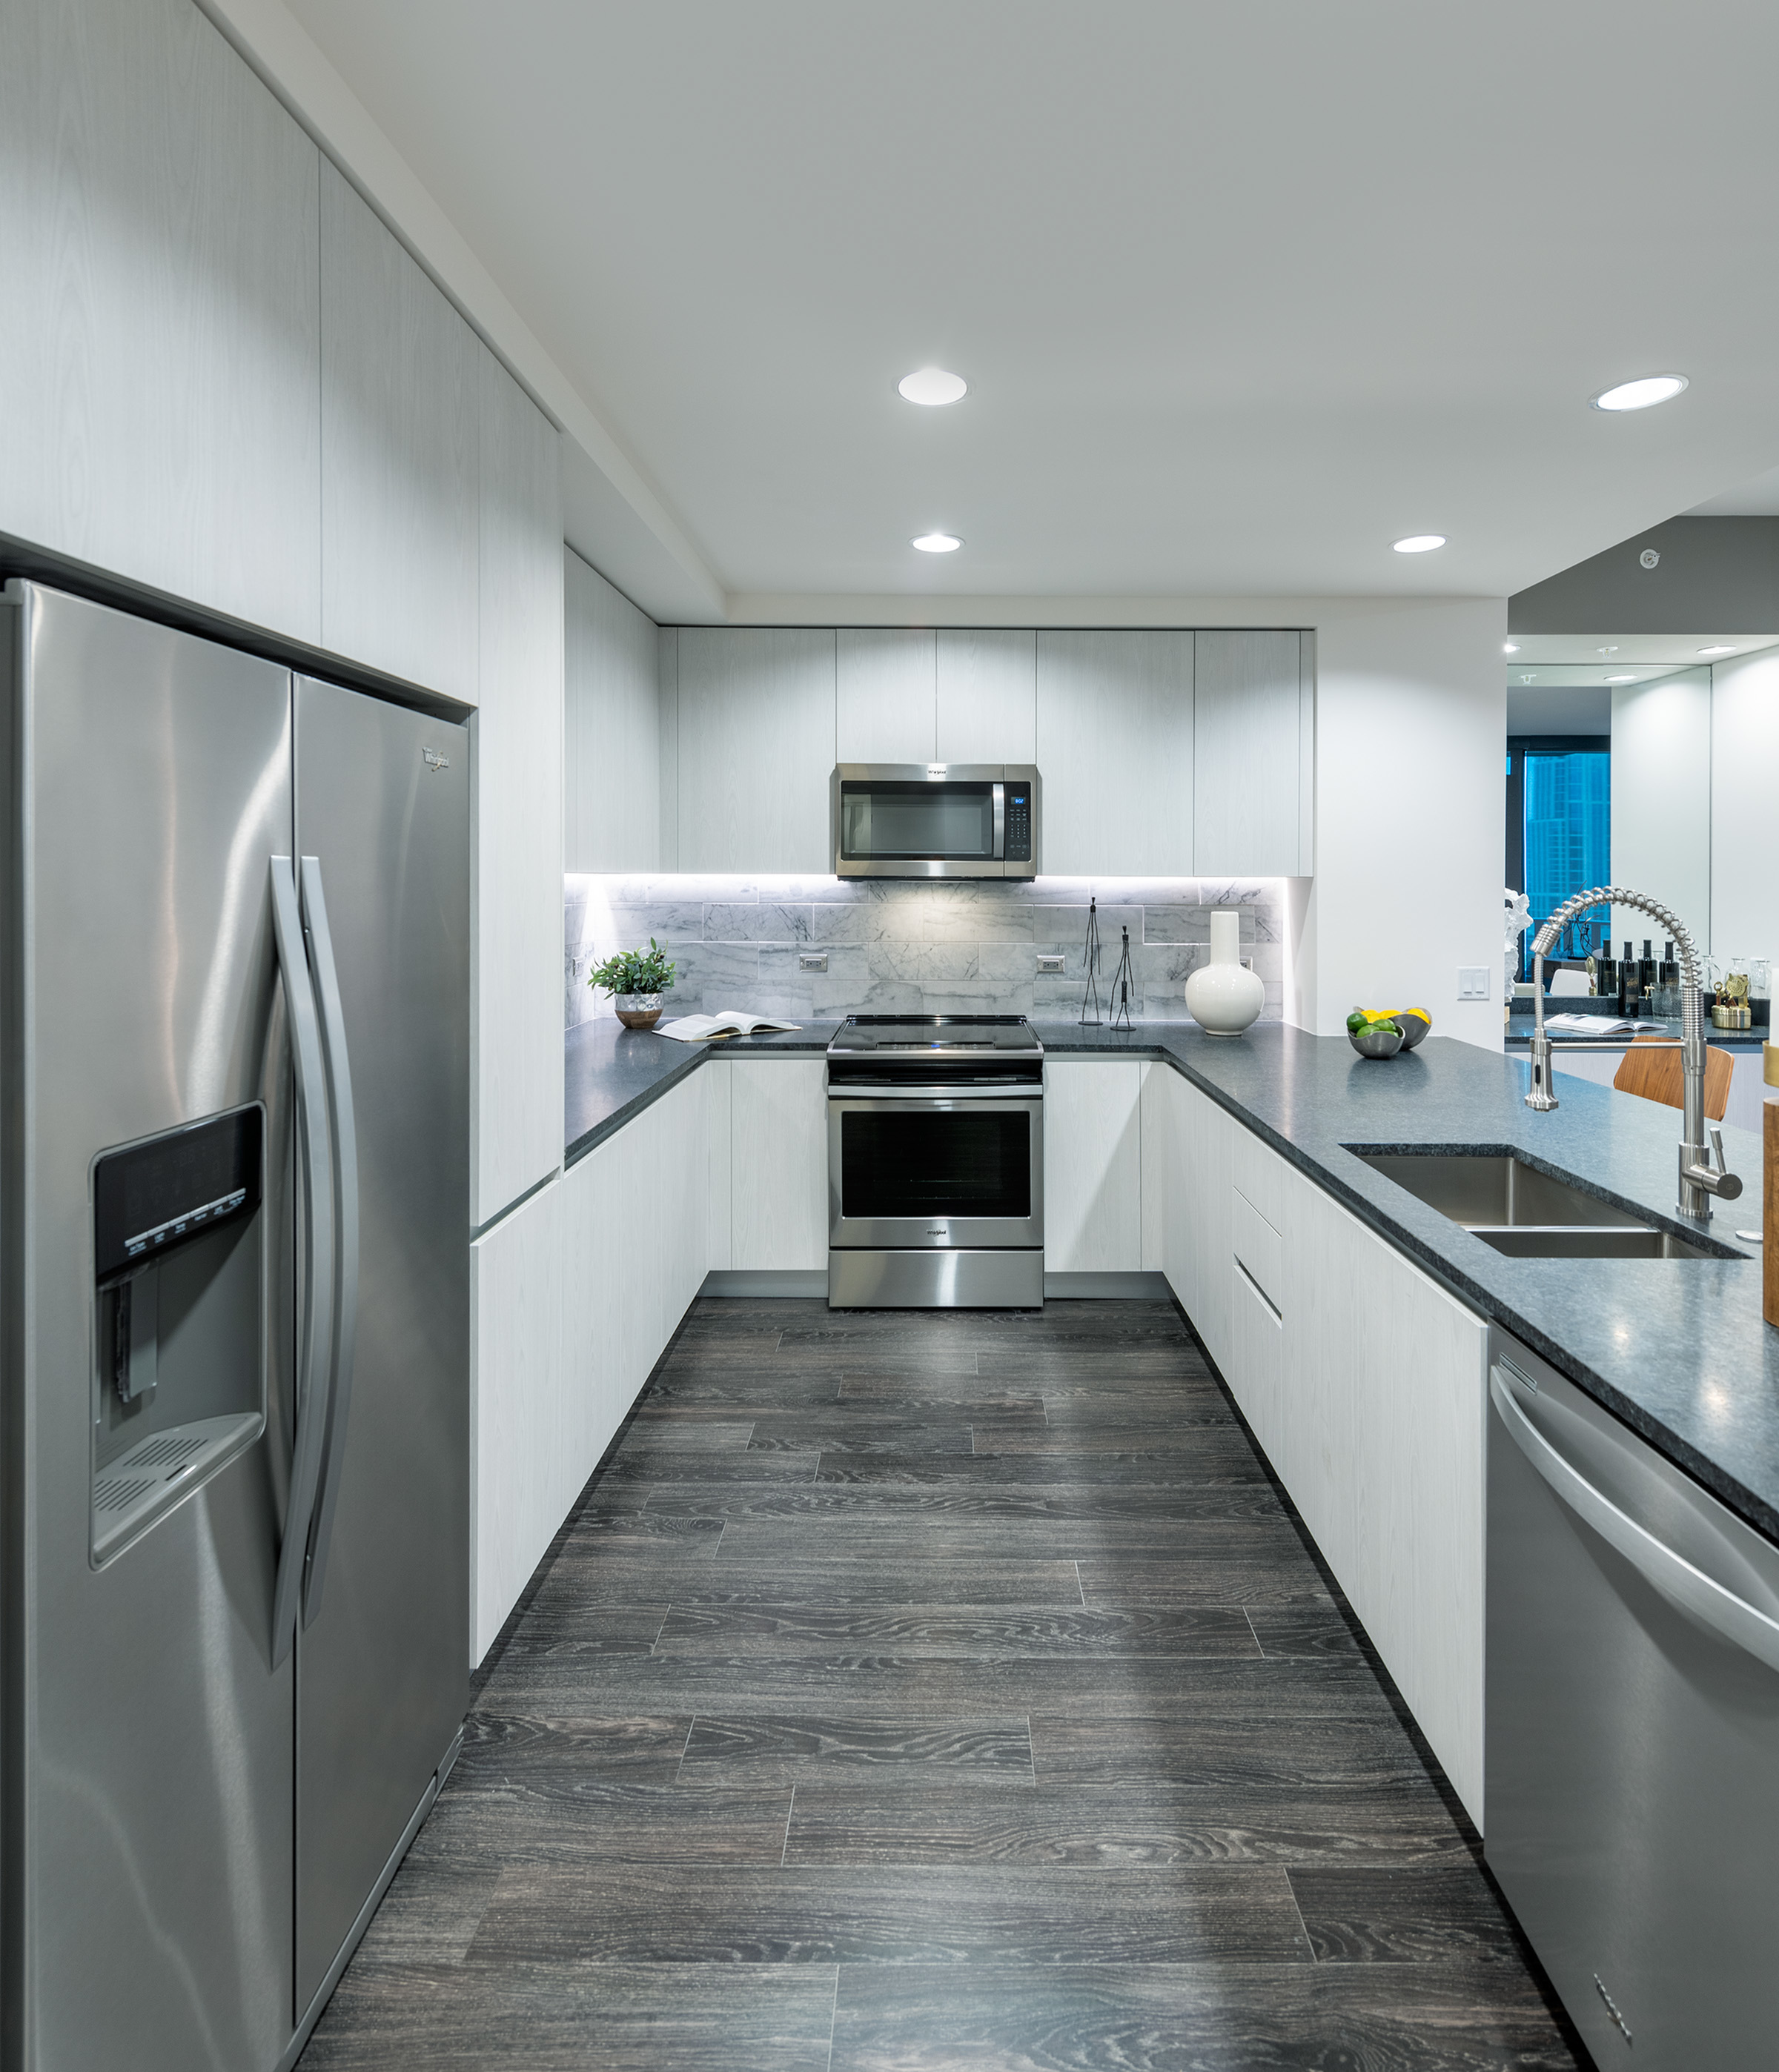 Chef-Inspired Kitchens with Stainless Steel Appliances